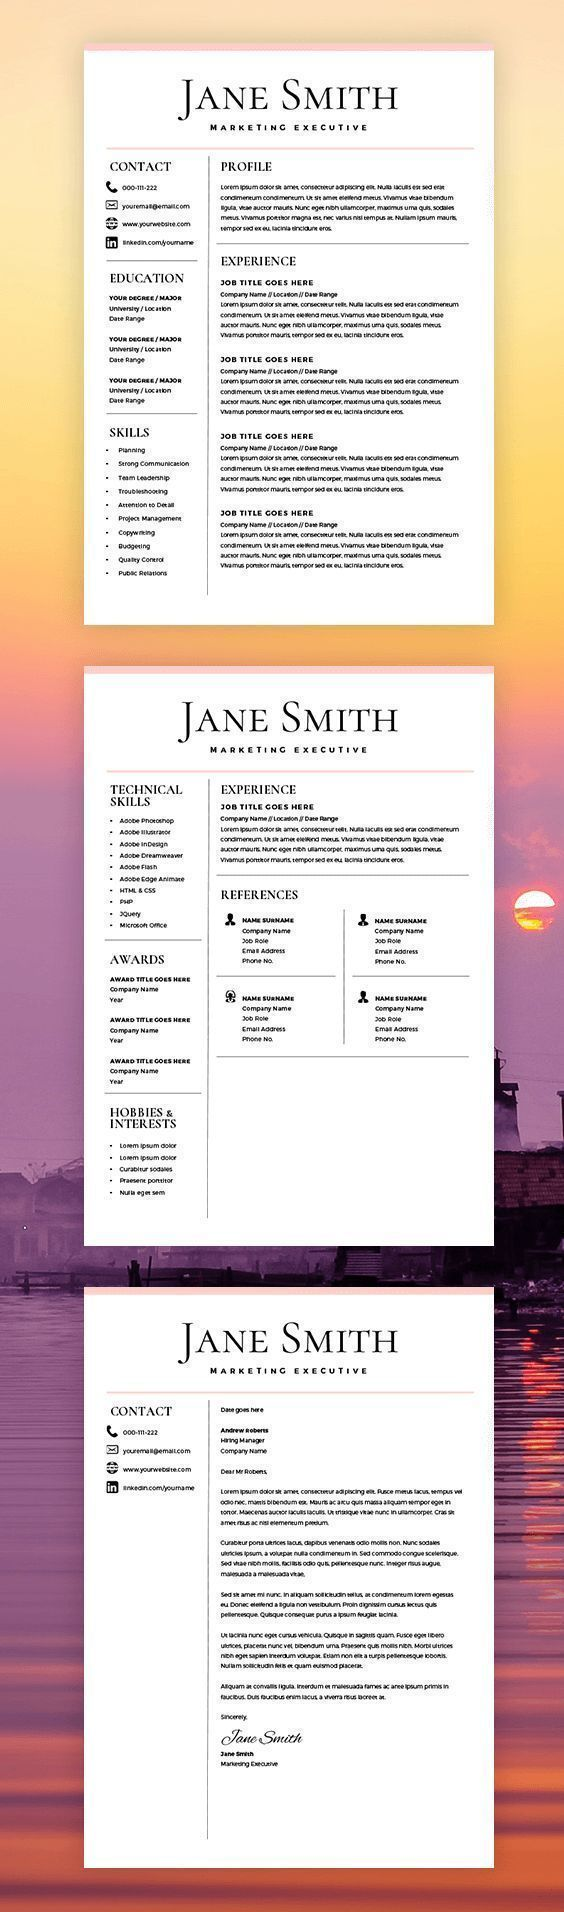 download job resume format%0A Resume Template  CV Template  Free Cover Letter  MS Word on Mac   PC